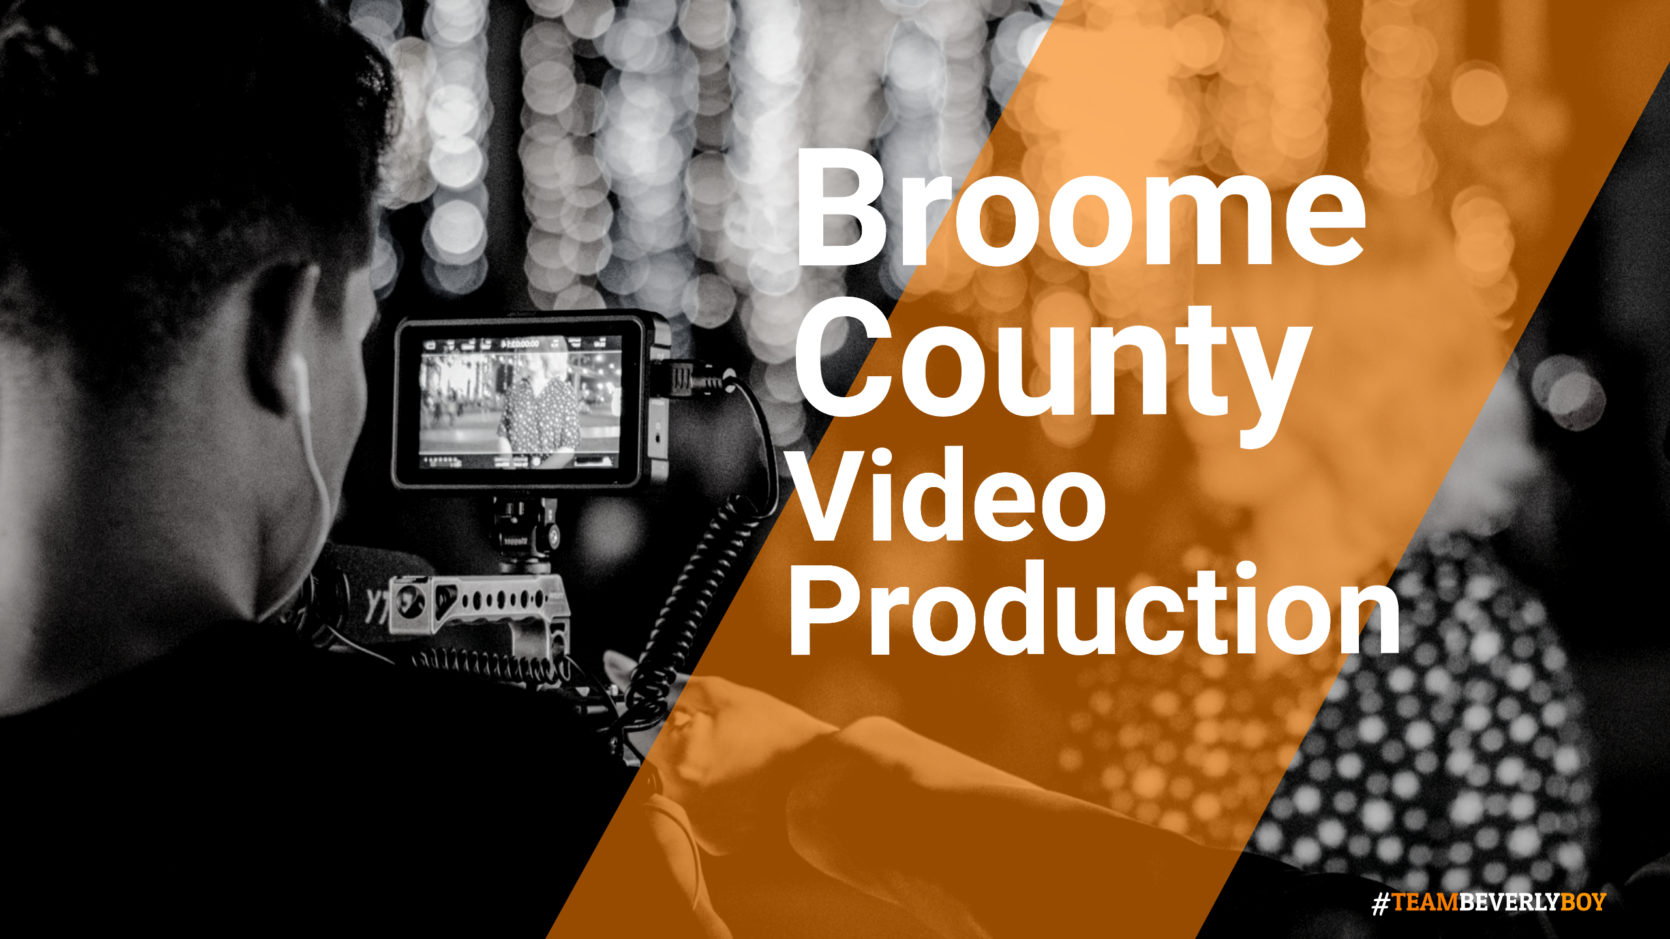 Broome County Video Production